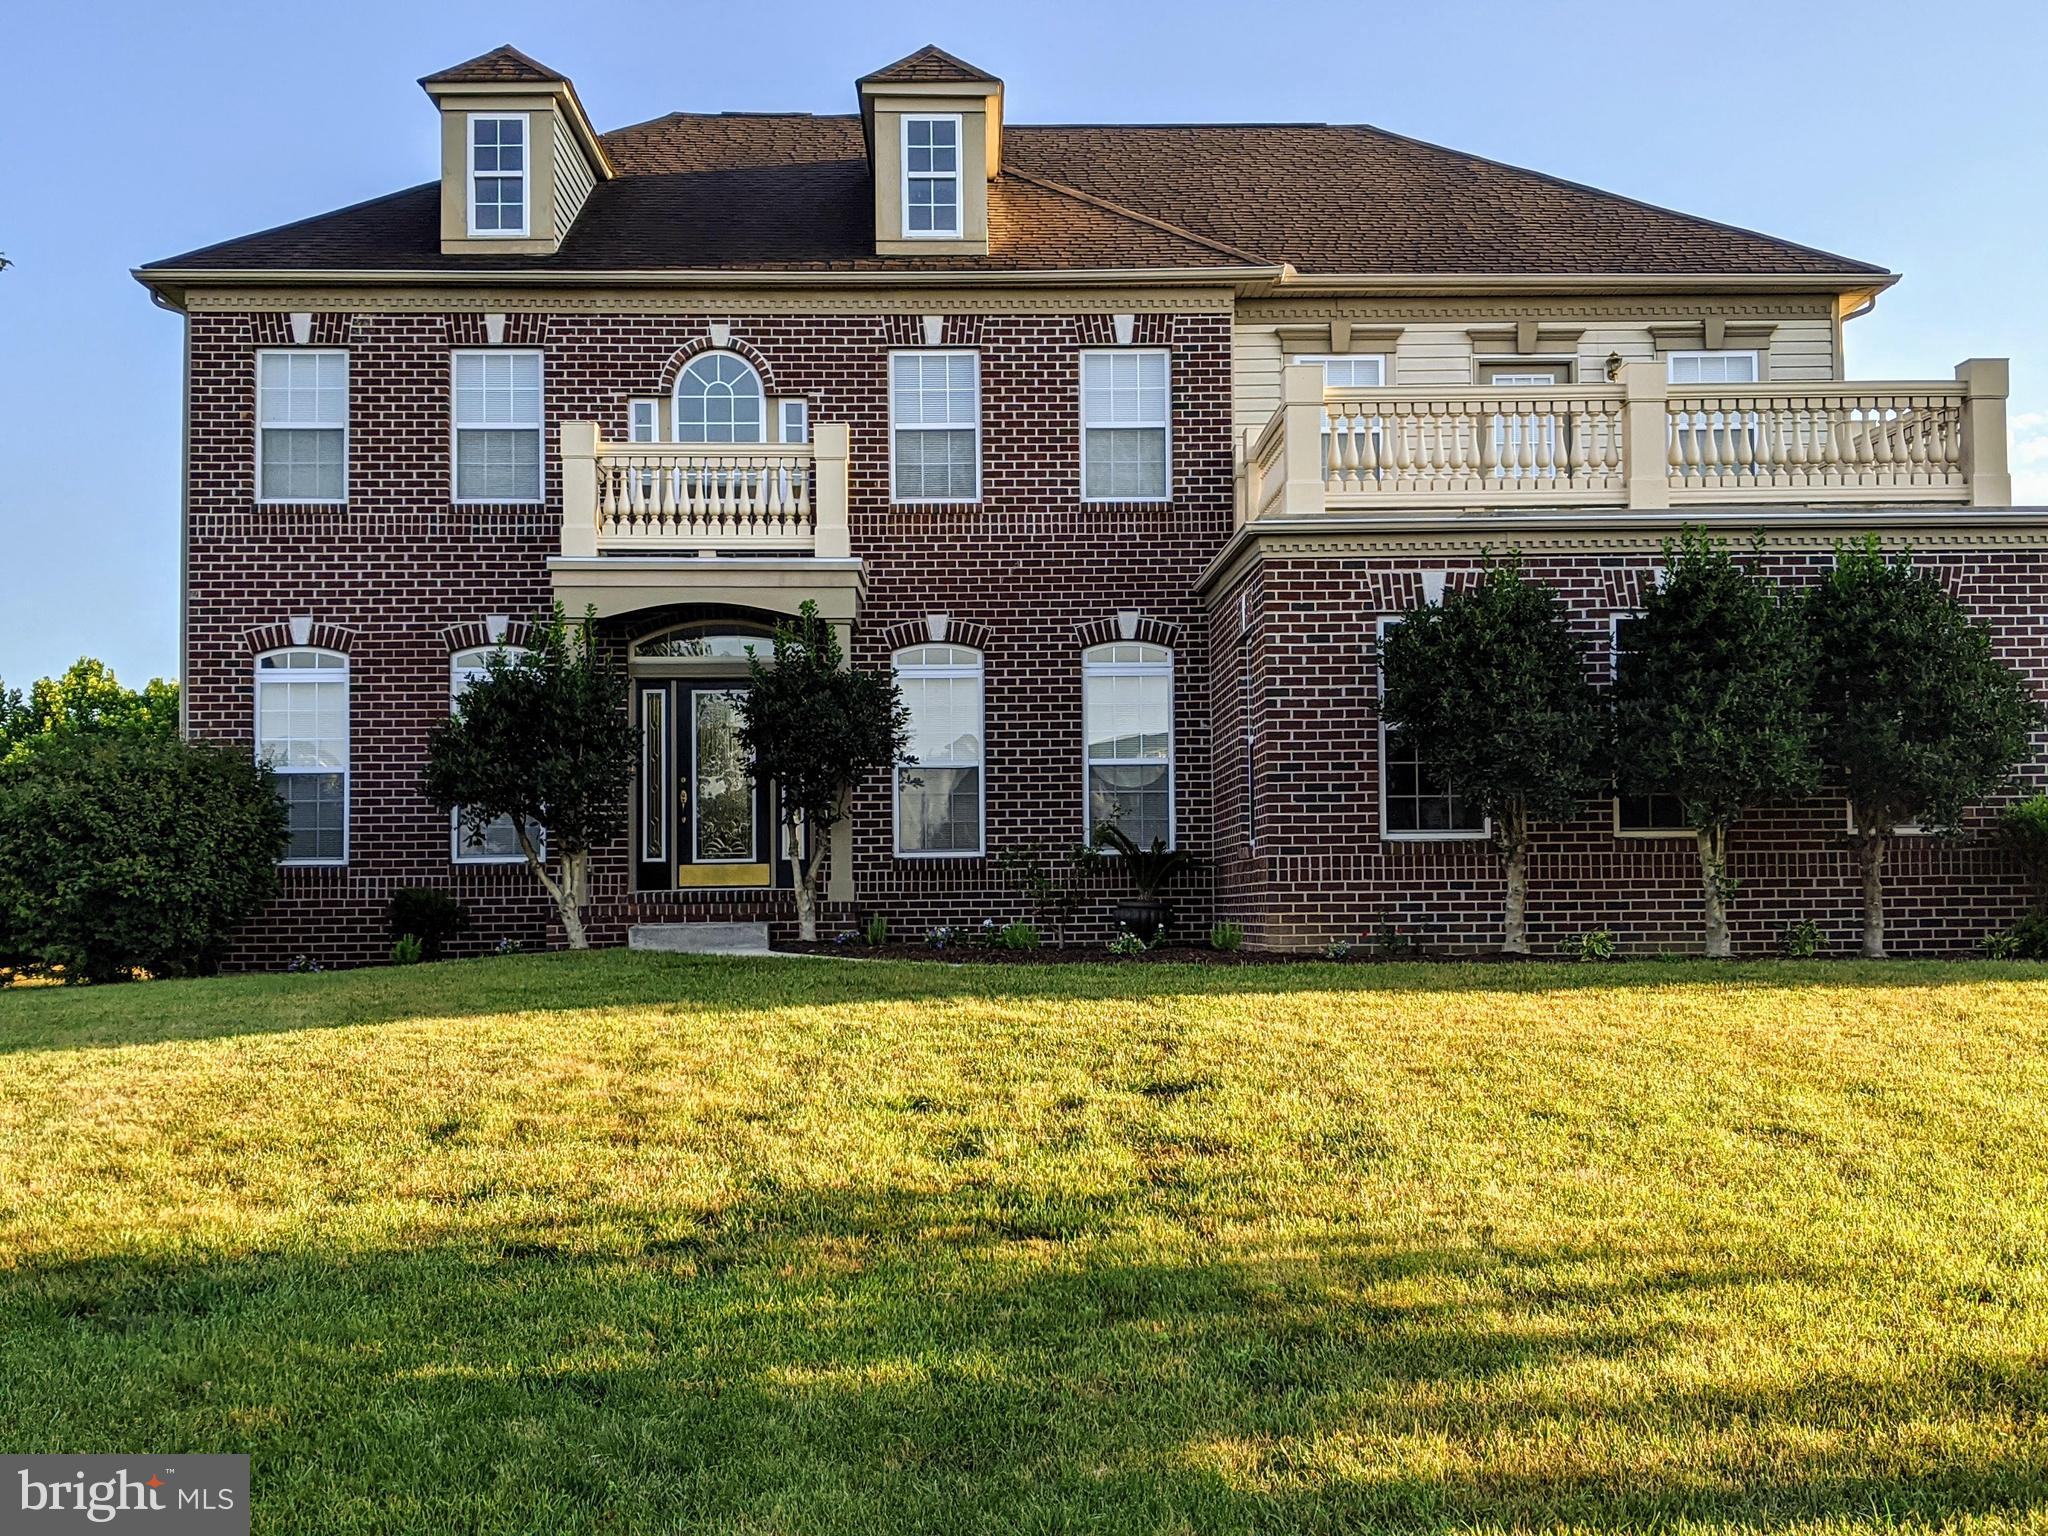 This Spectacular 4BR/2.5BA two-story home is located in the popular community of Bay Pointe in the highly acclaimed Appoquinimink School district. Some notable features In addition to being located on a PRIME 1.12 Acre lot include: 3 car garage, HIP roof, a Wide open floor plan w/ 9 foot ceilings on all levels, Brand new hardwood floor throughout the main level and new plush carpet on the 2nd level, Large gourmet kitchen w/ granite countertops, New tile backsplash, SS appliances including a double wall oven, upgraded cabinets, center island w/ breakfast bar, a nice sized sunroom, Office/Study, and a Two story family room w/ a gas fireplace in the main level. A split staircase leads to the second floor. In the master suite you'll find a spacious sitting area facing a large balcony, 2 walk-in closets, a master bath w/ twin vanities, tiled flooring and a large soaking tub. Completely repainted house w/ a newly resealed blacktop driveway.  This home will not last long.